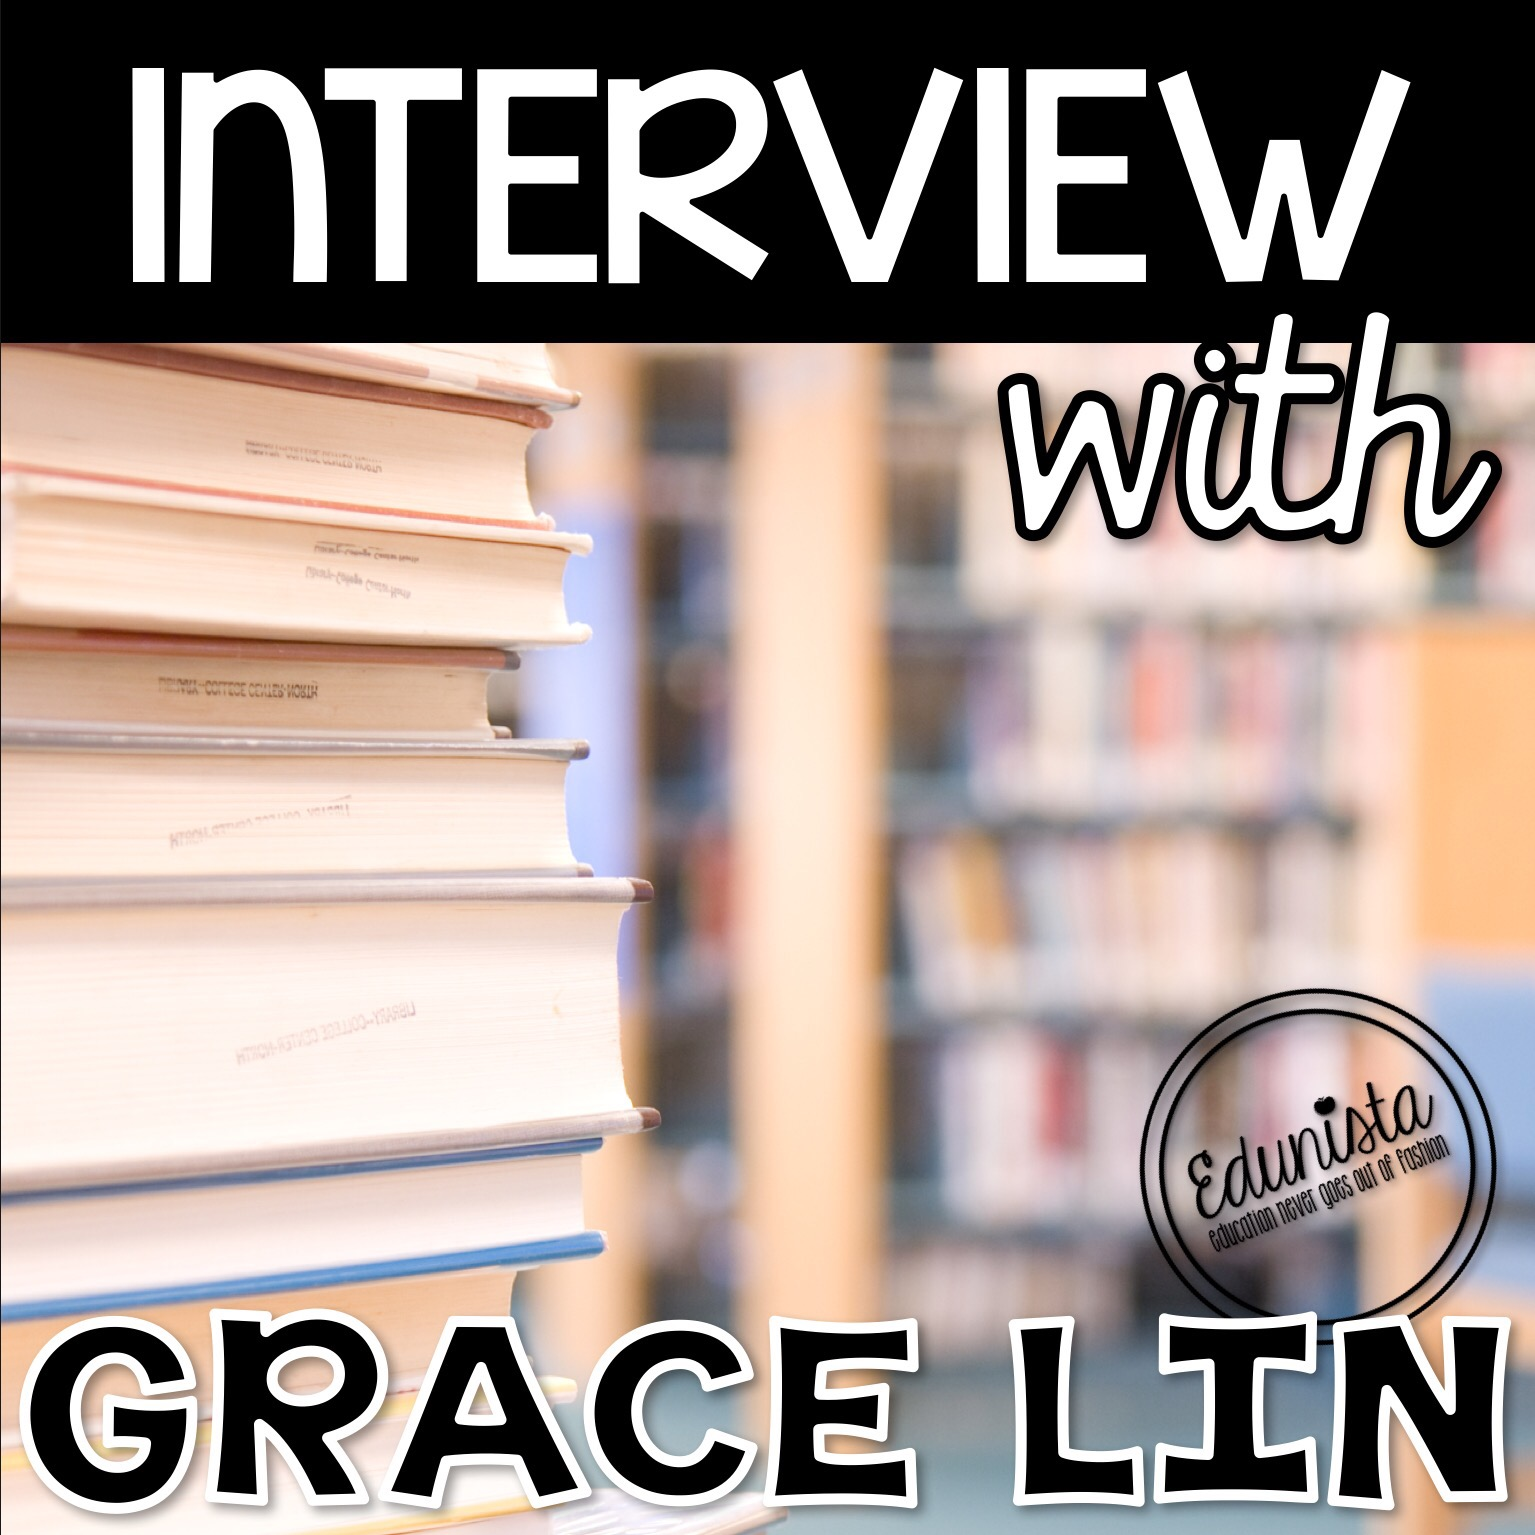 Check out this interview with children's book author and illustrator Grace Lin in which she describes growing up with cultural differences.